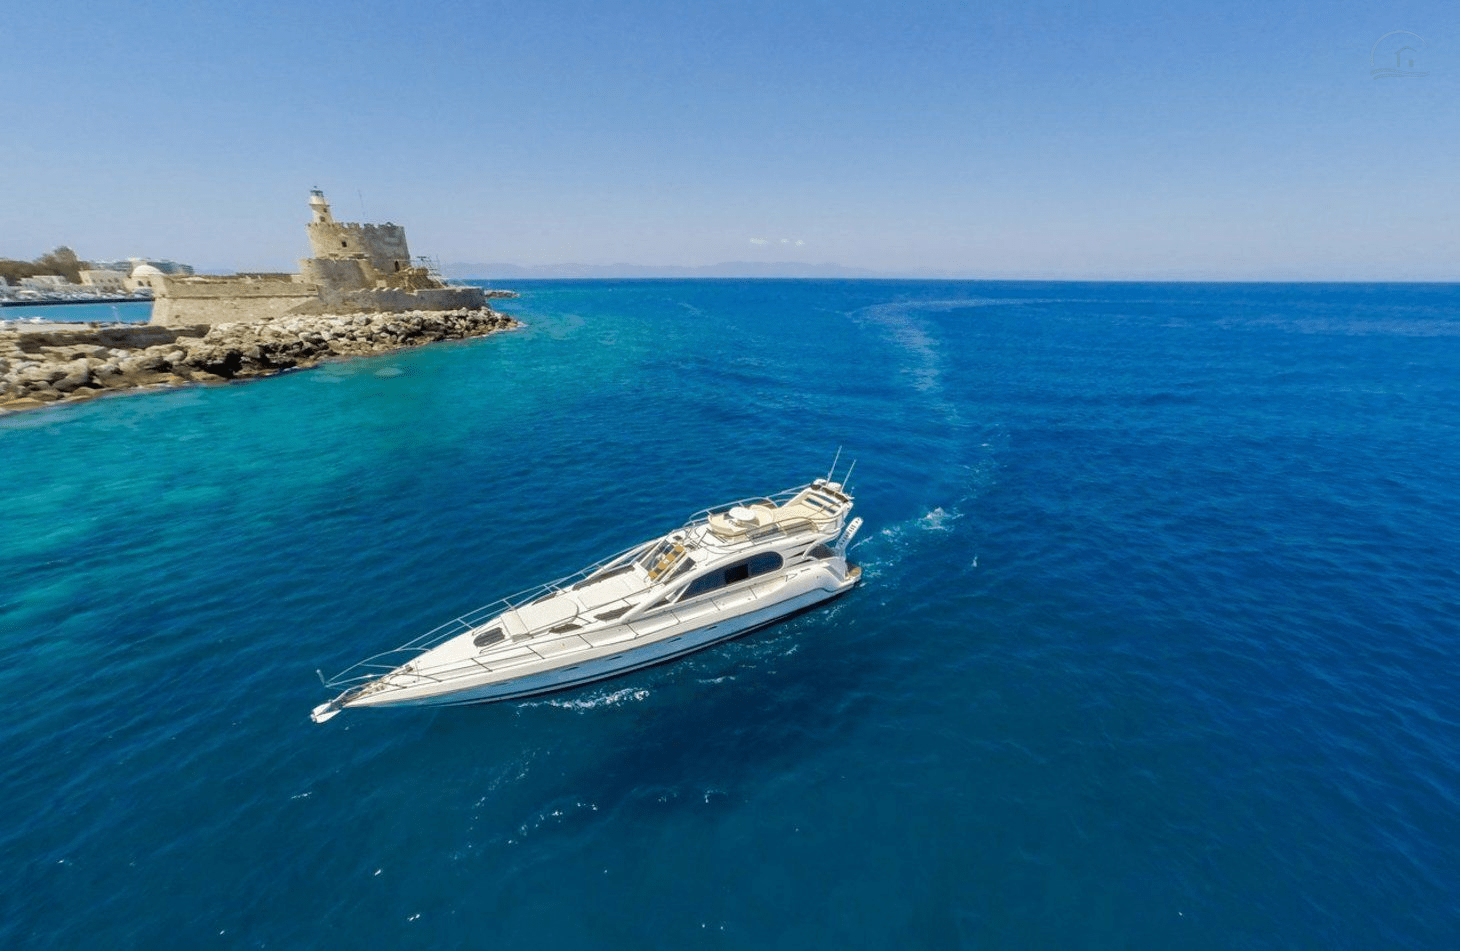 Yacht Badezimmer Discover The Ionian Islands With Our Luxury Yacht Areti Around